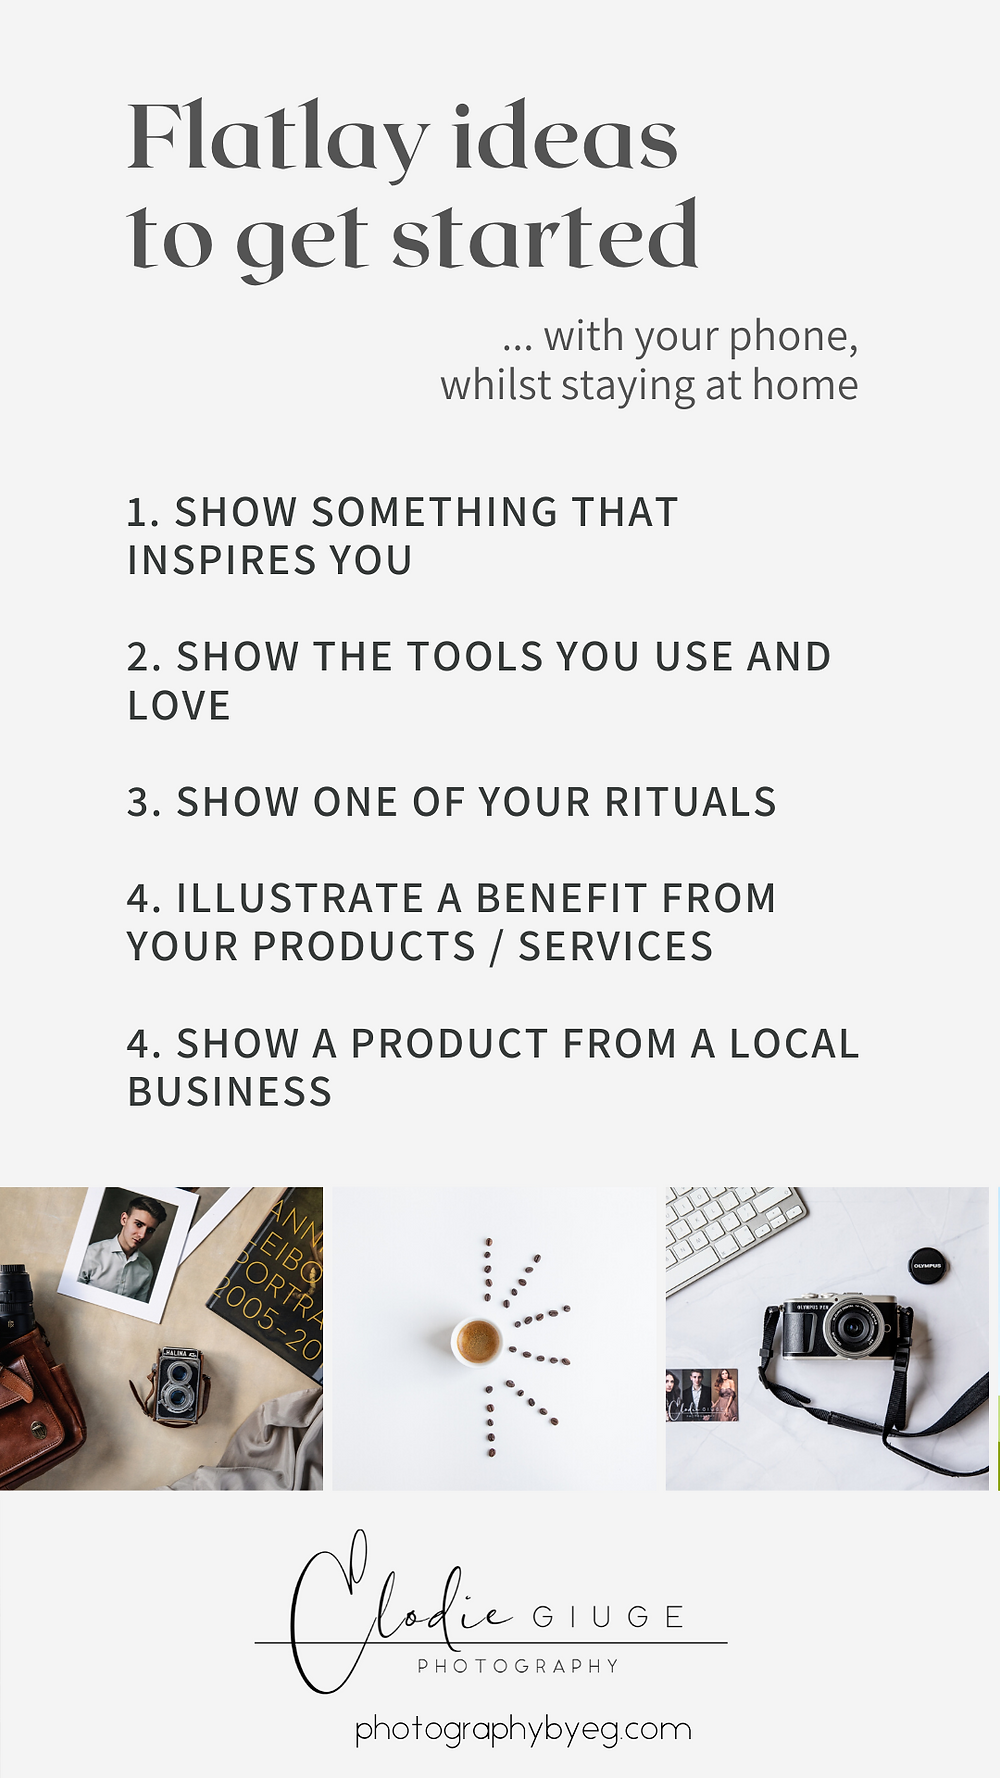 Flatlay ideas for small businesses